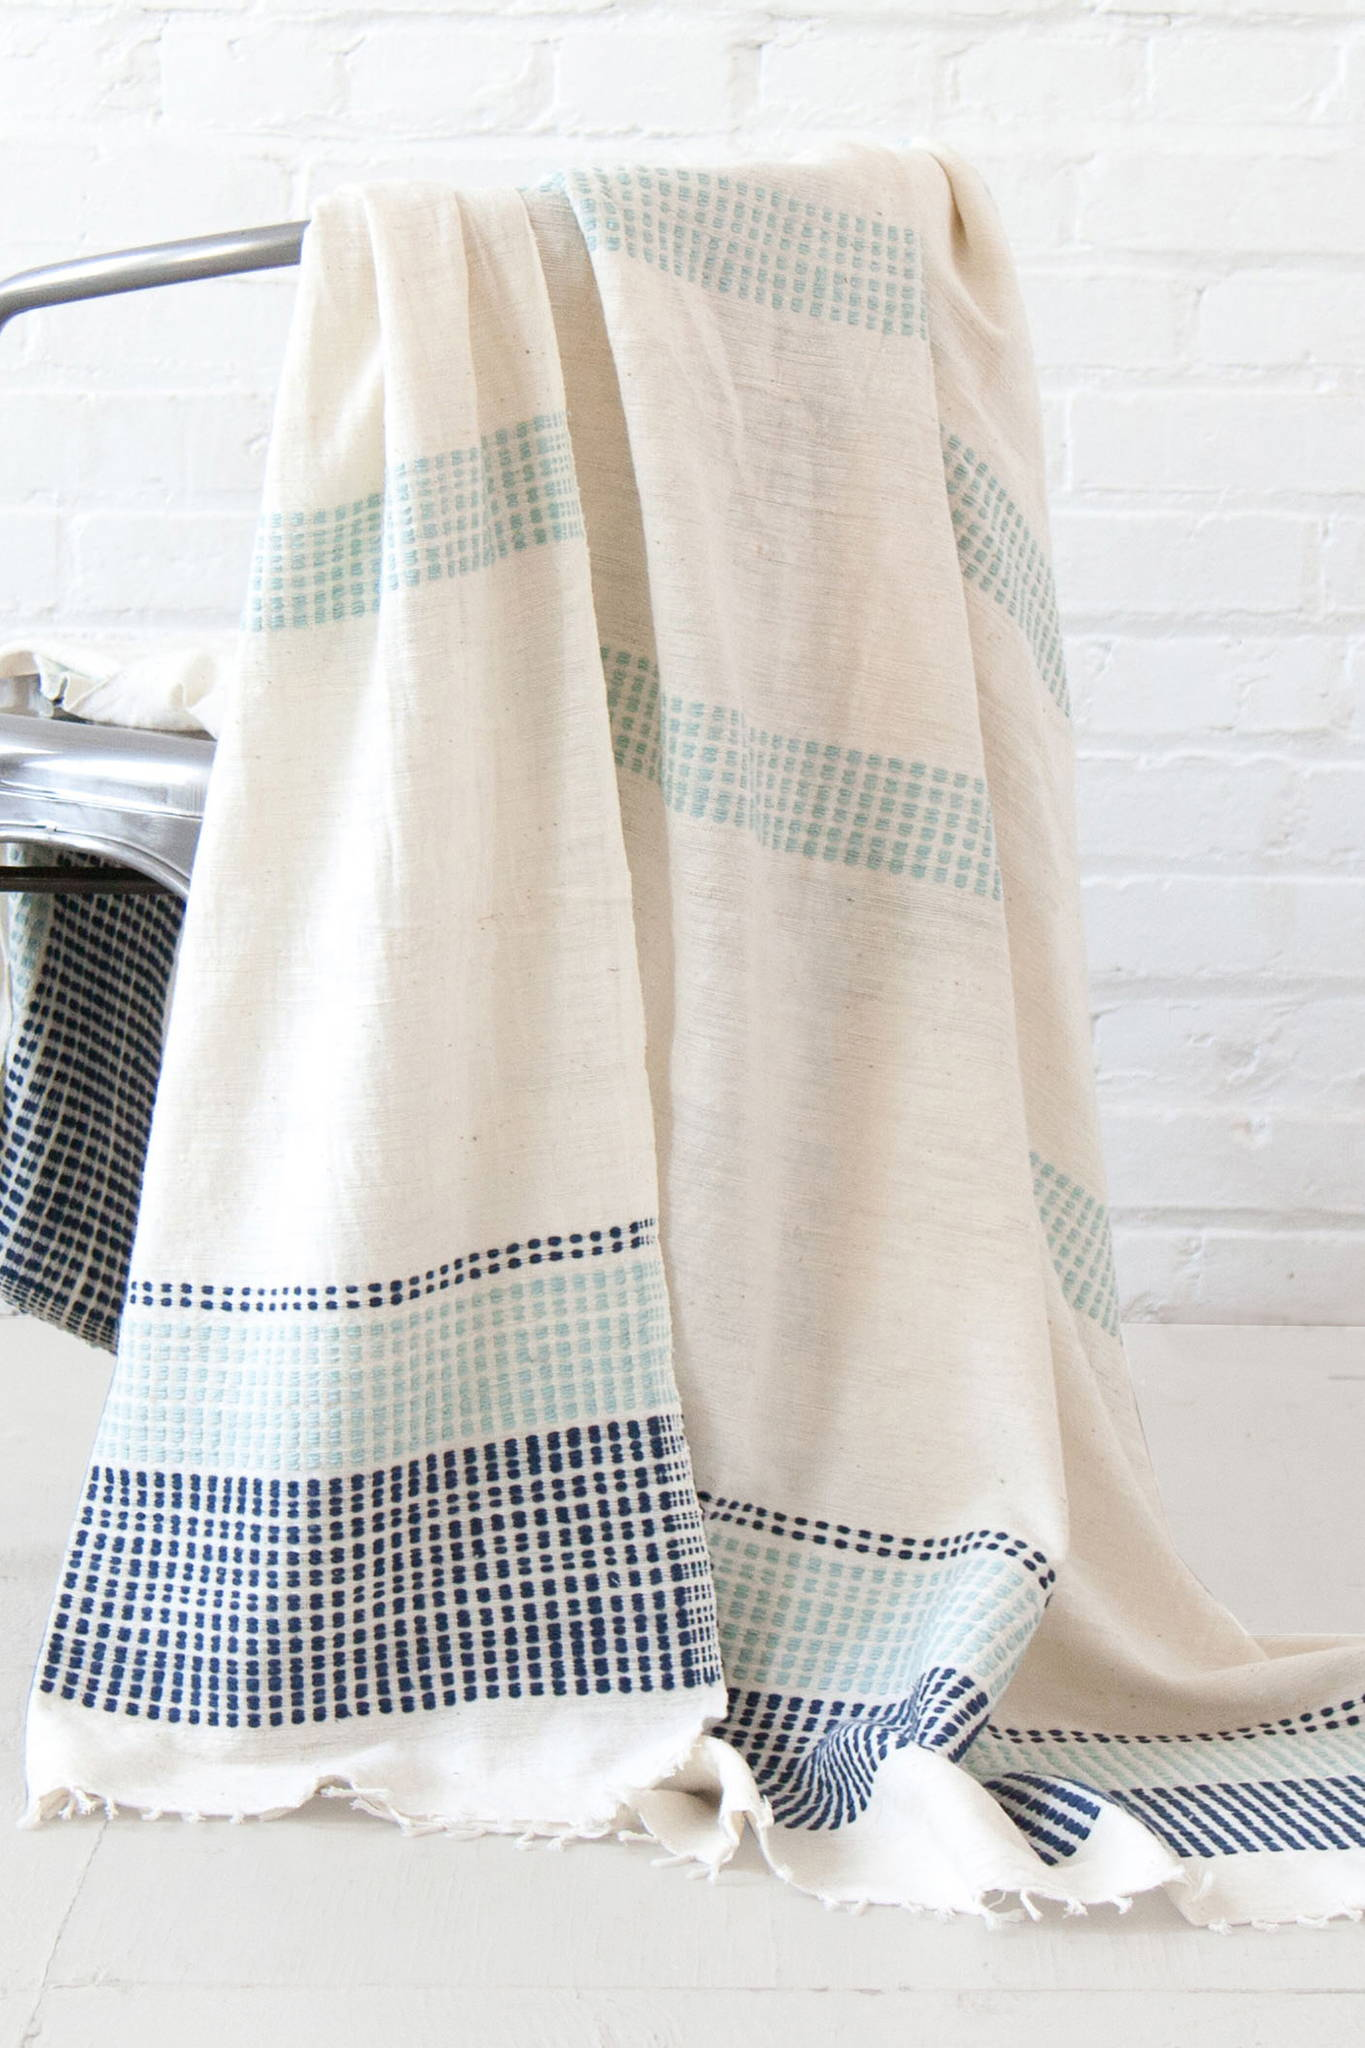 GABI ETHIOPIAN THROW BLANKET - NAVY $ 155